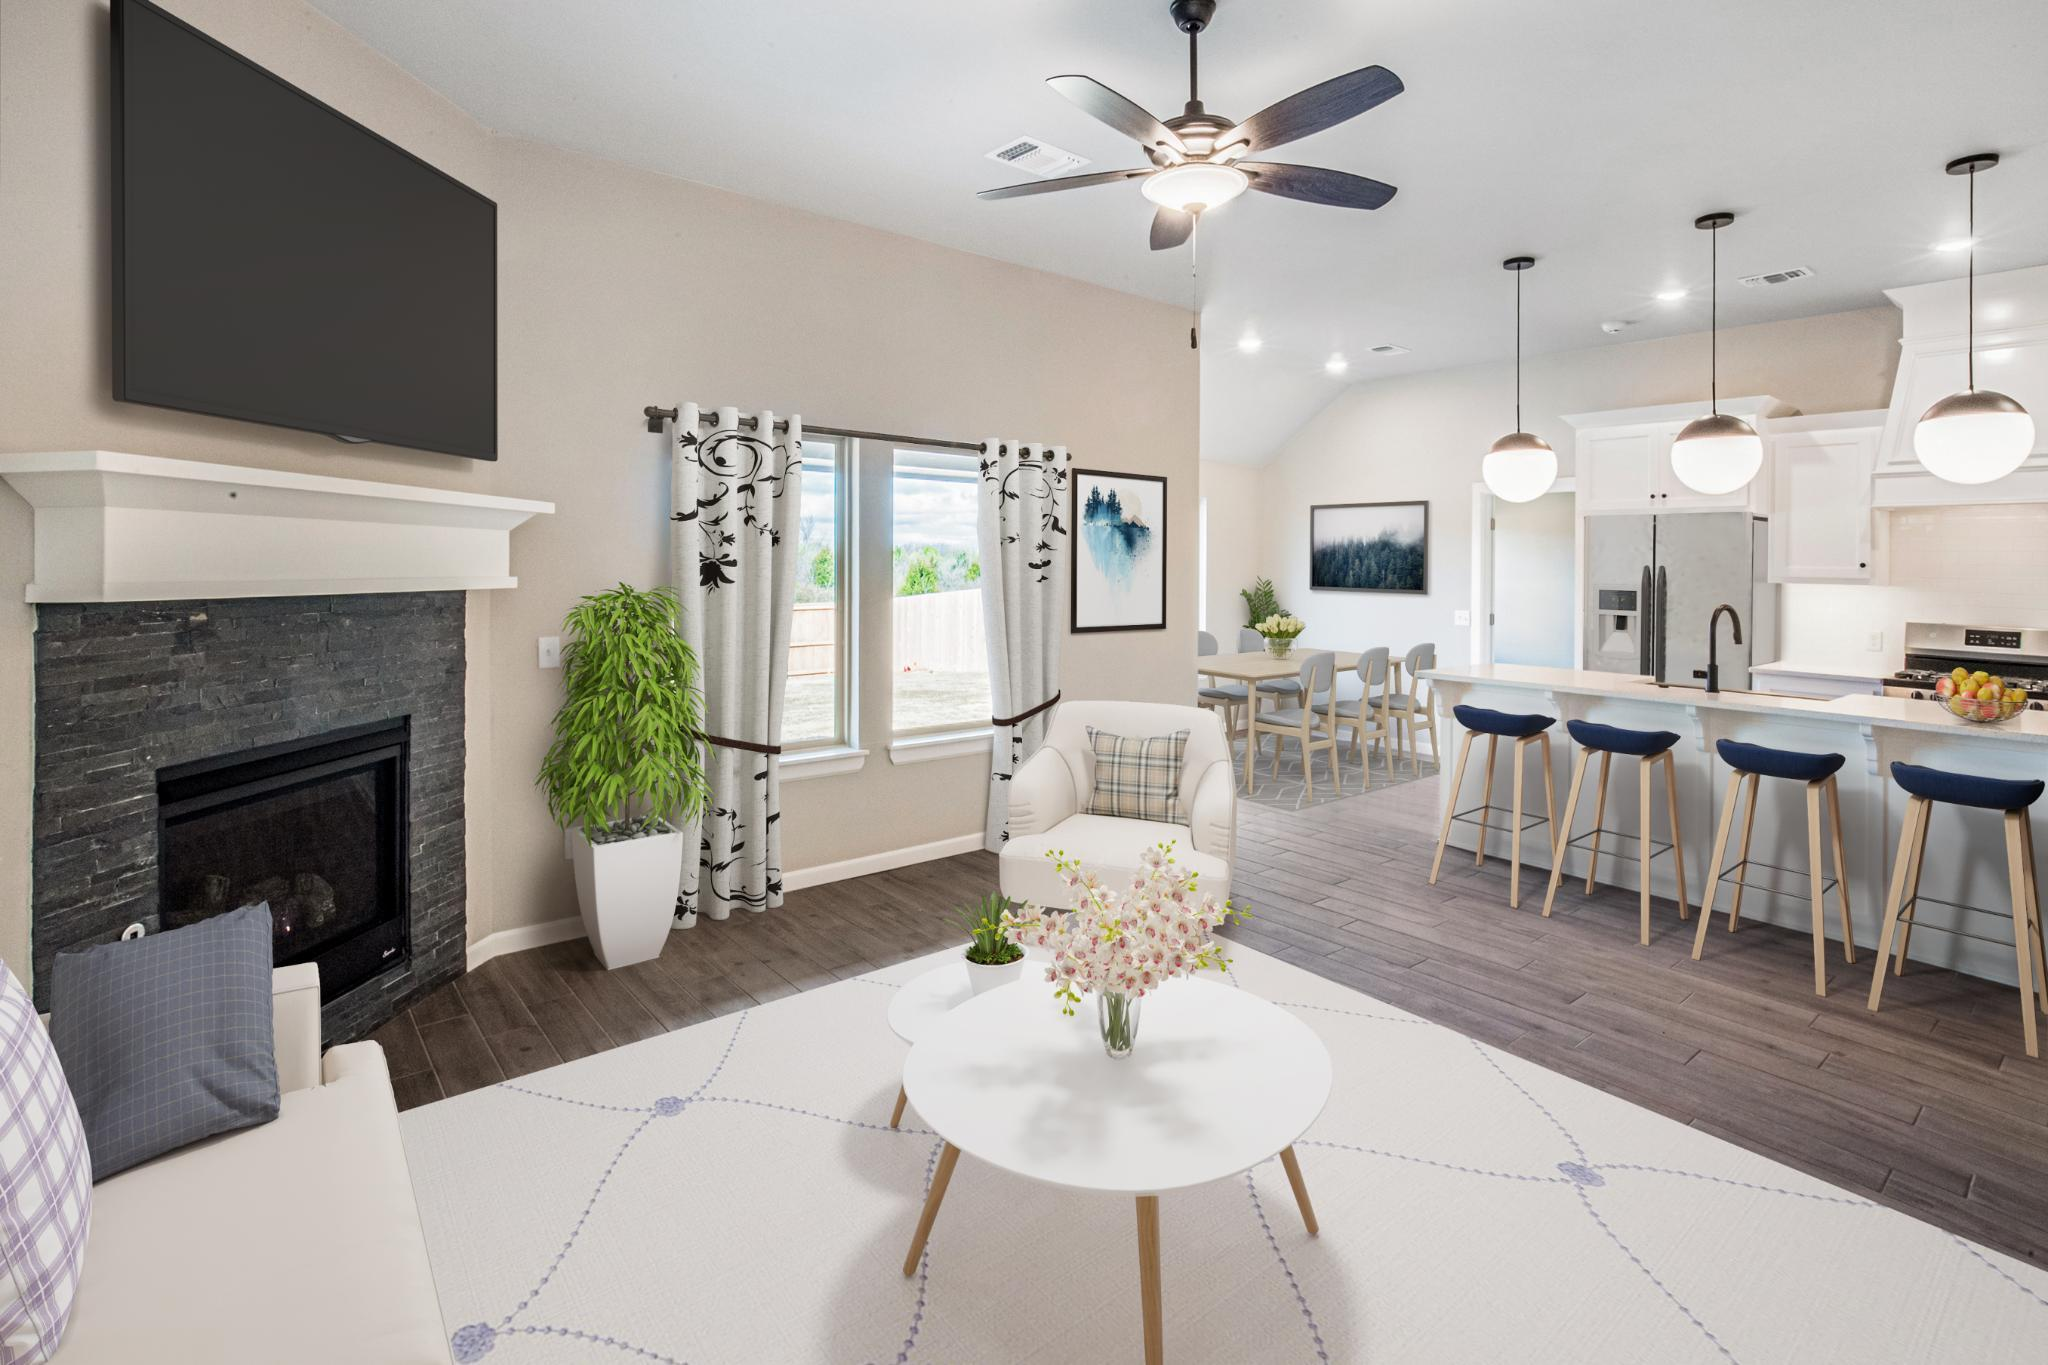 Living Area featured in the Brinklee By Homes By Taber in Oklahoma City, OK